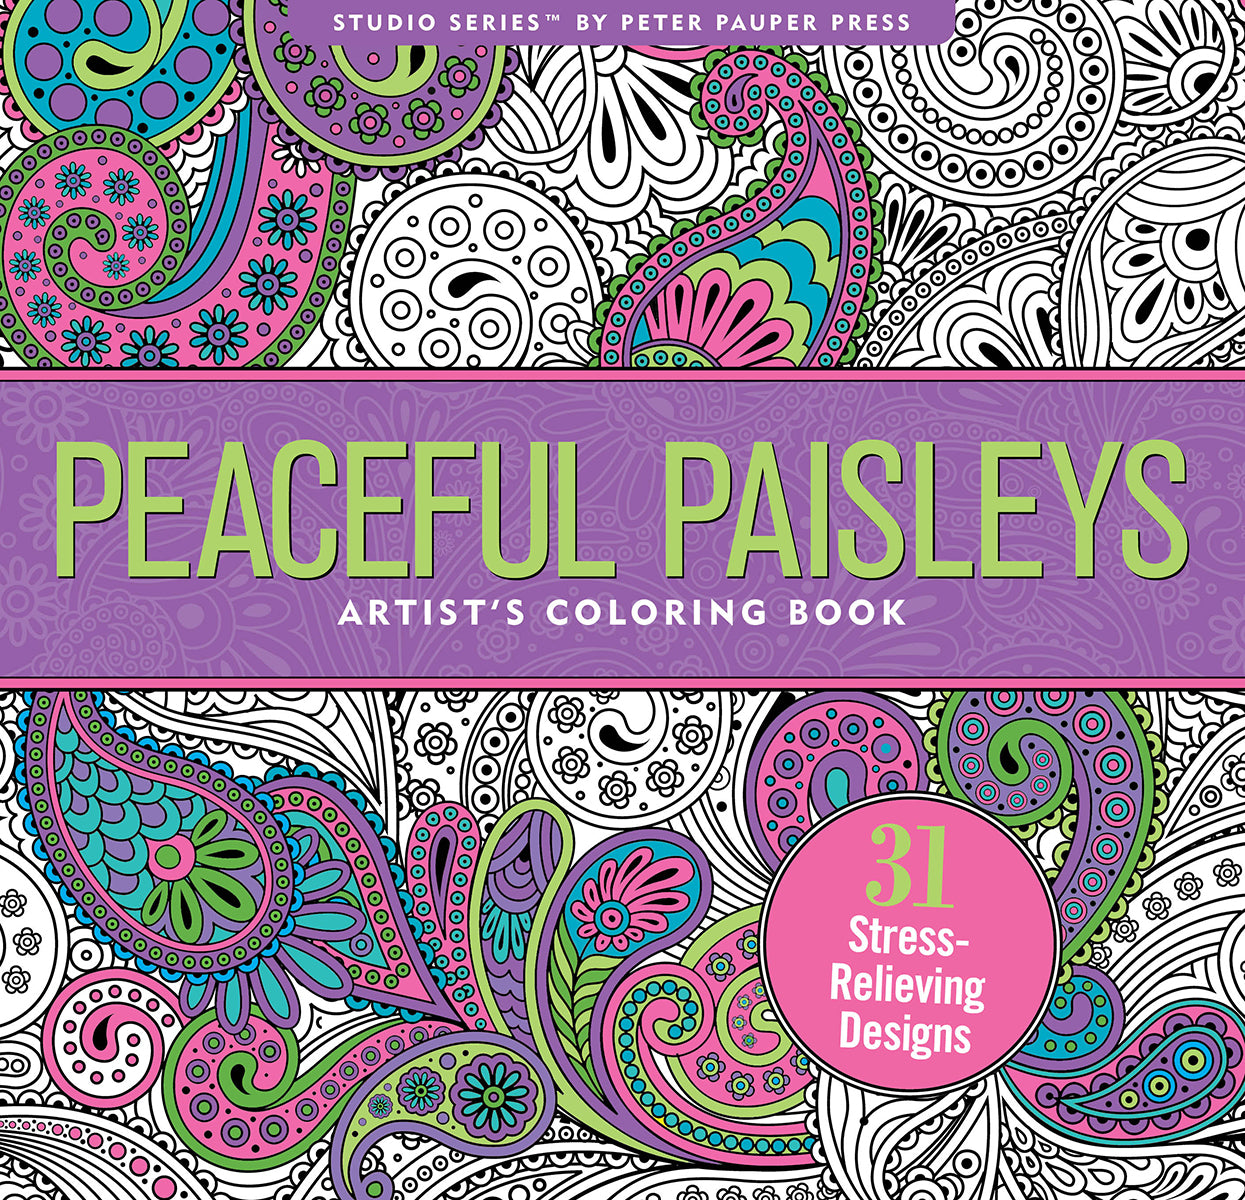 Peaceful Paisleys - Artist's Coloring Book